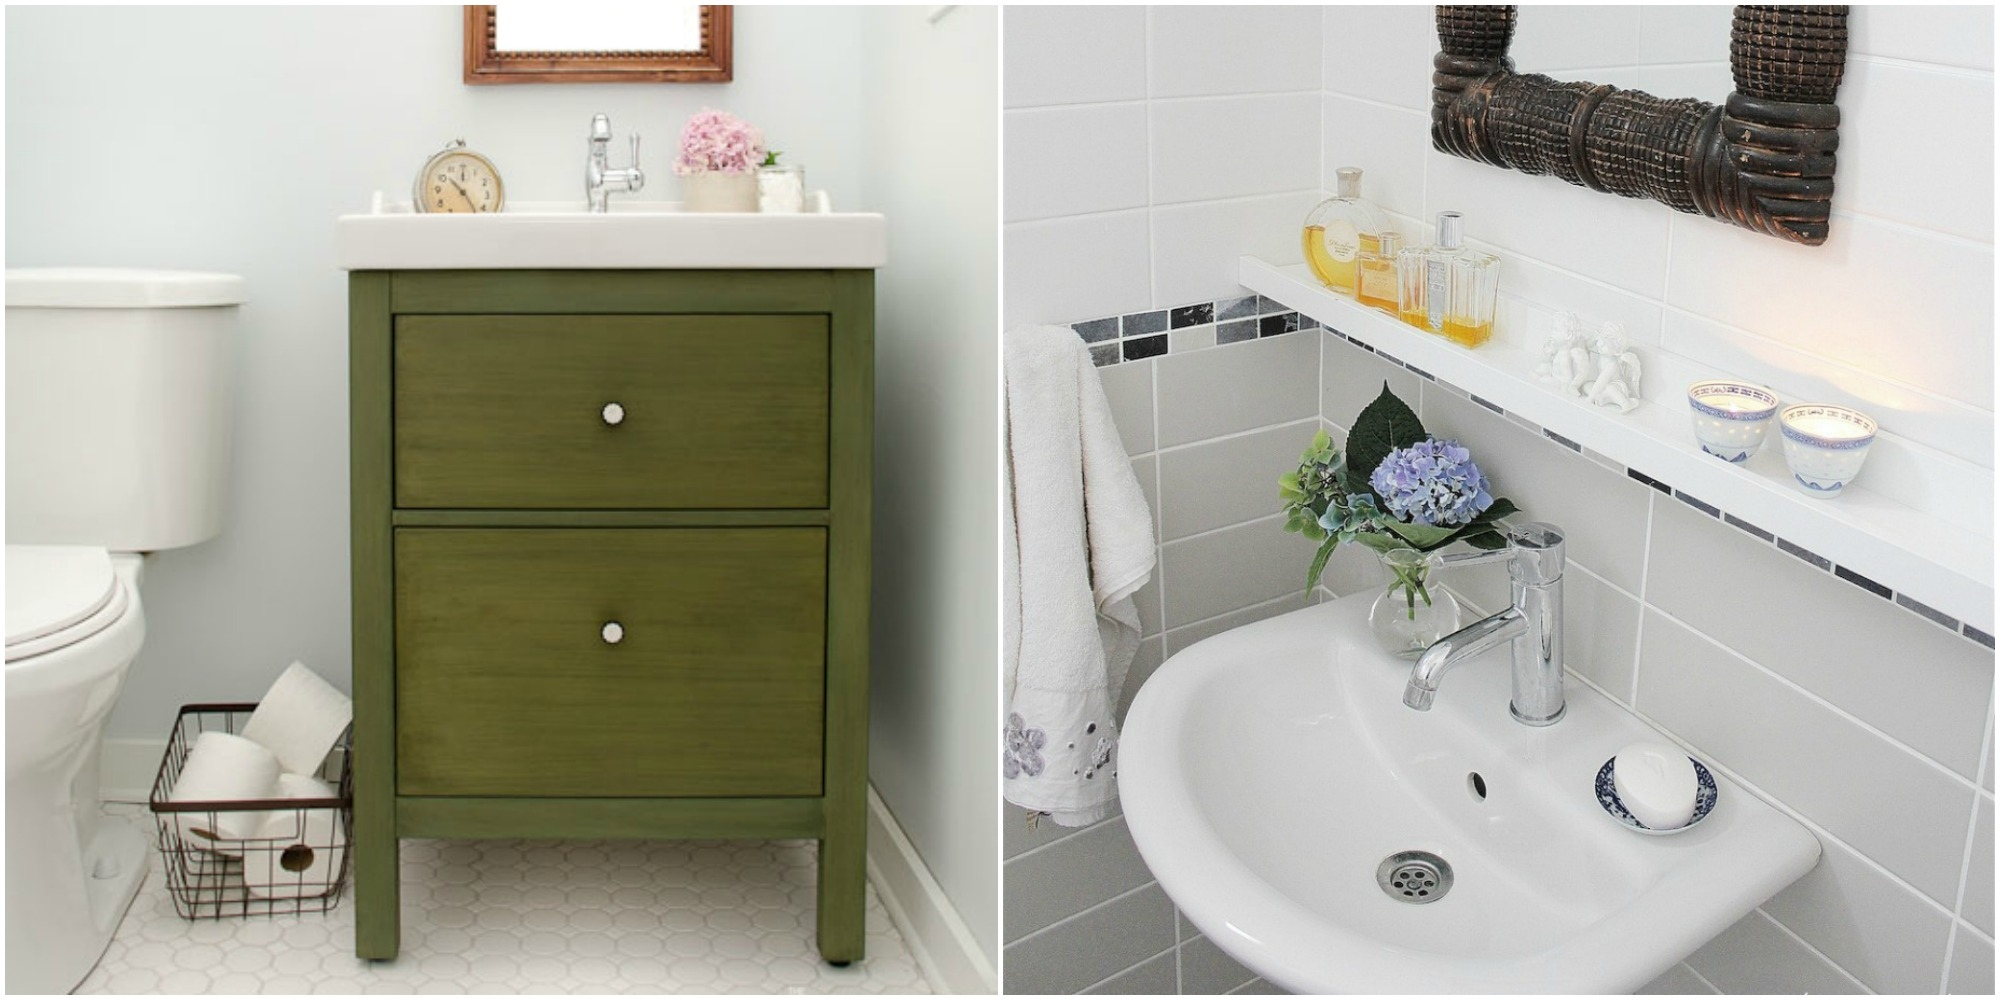 Create a dream bathroom that fits your home and budget